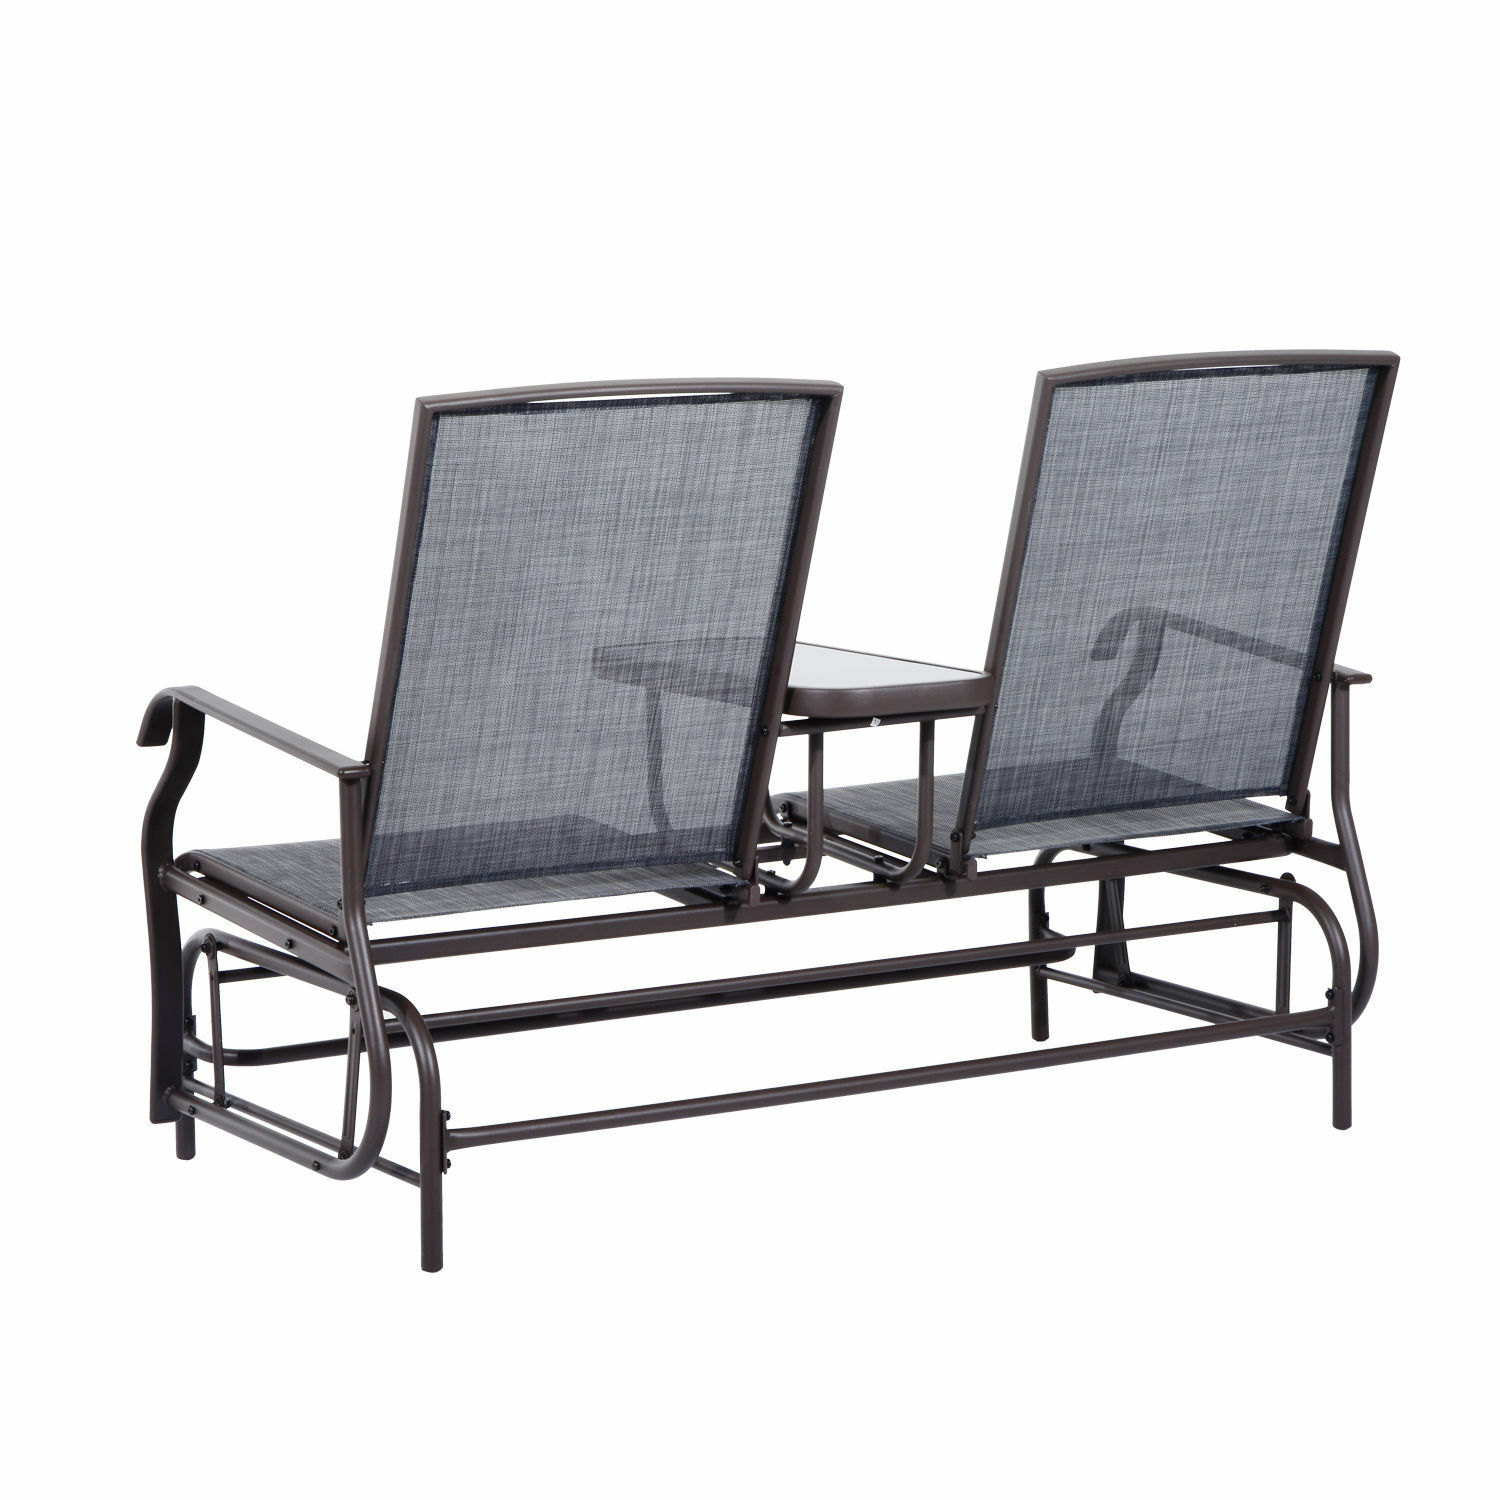 Patio glider rocking chair bench loveseat 2 person rocker deck outdoor furniture for sale online